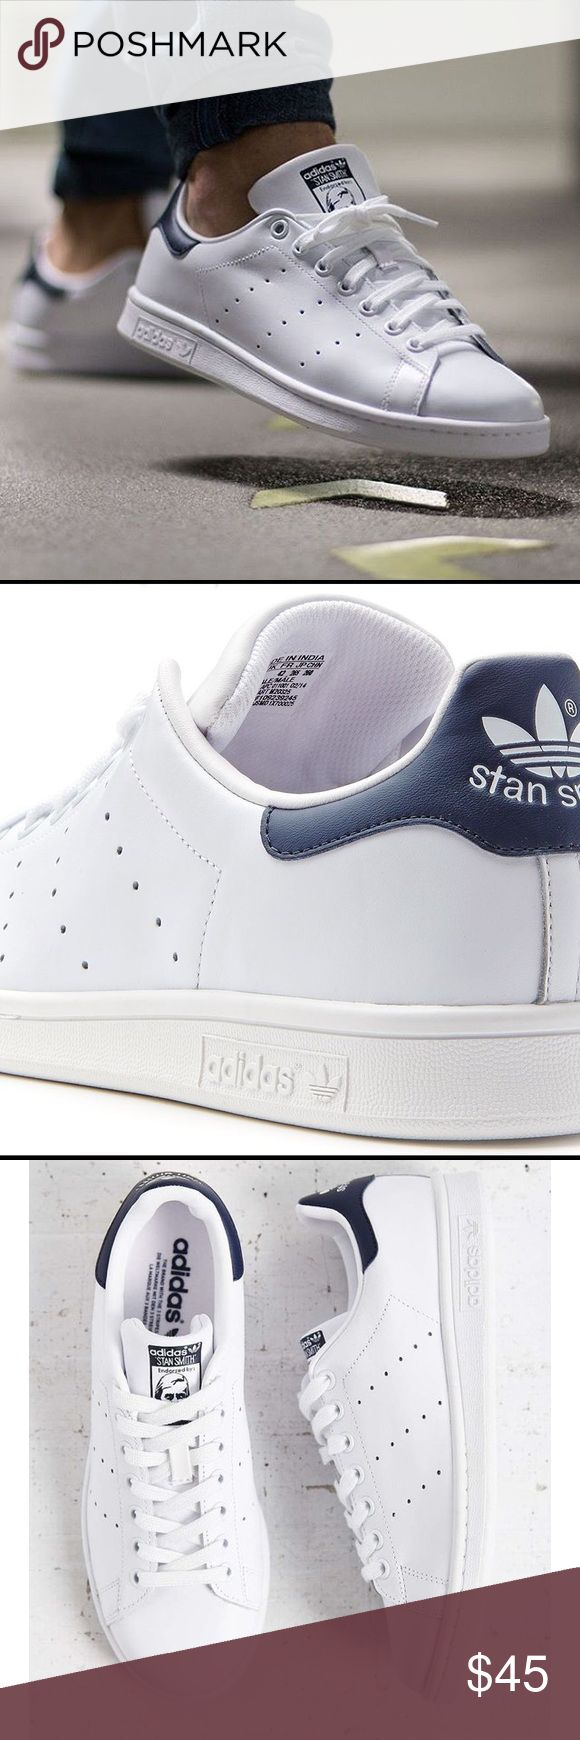 Men's Adidas Stan Smith Originals Men's Adidas Stan Smith Originals  Full Grain Leather Upper  Classic White and Navy  Excellent Condition 👌🏾 Smoke free home🚭 15% off of 4 or more bundled items! Adidas Shoes Sneakers